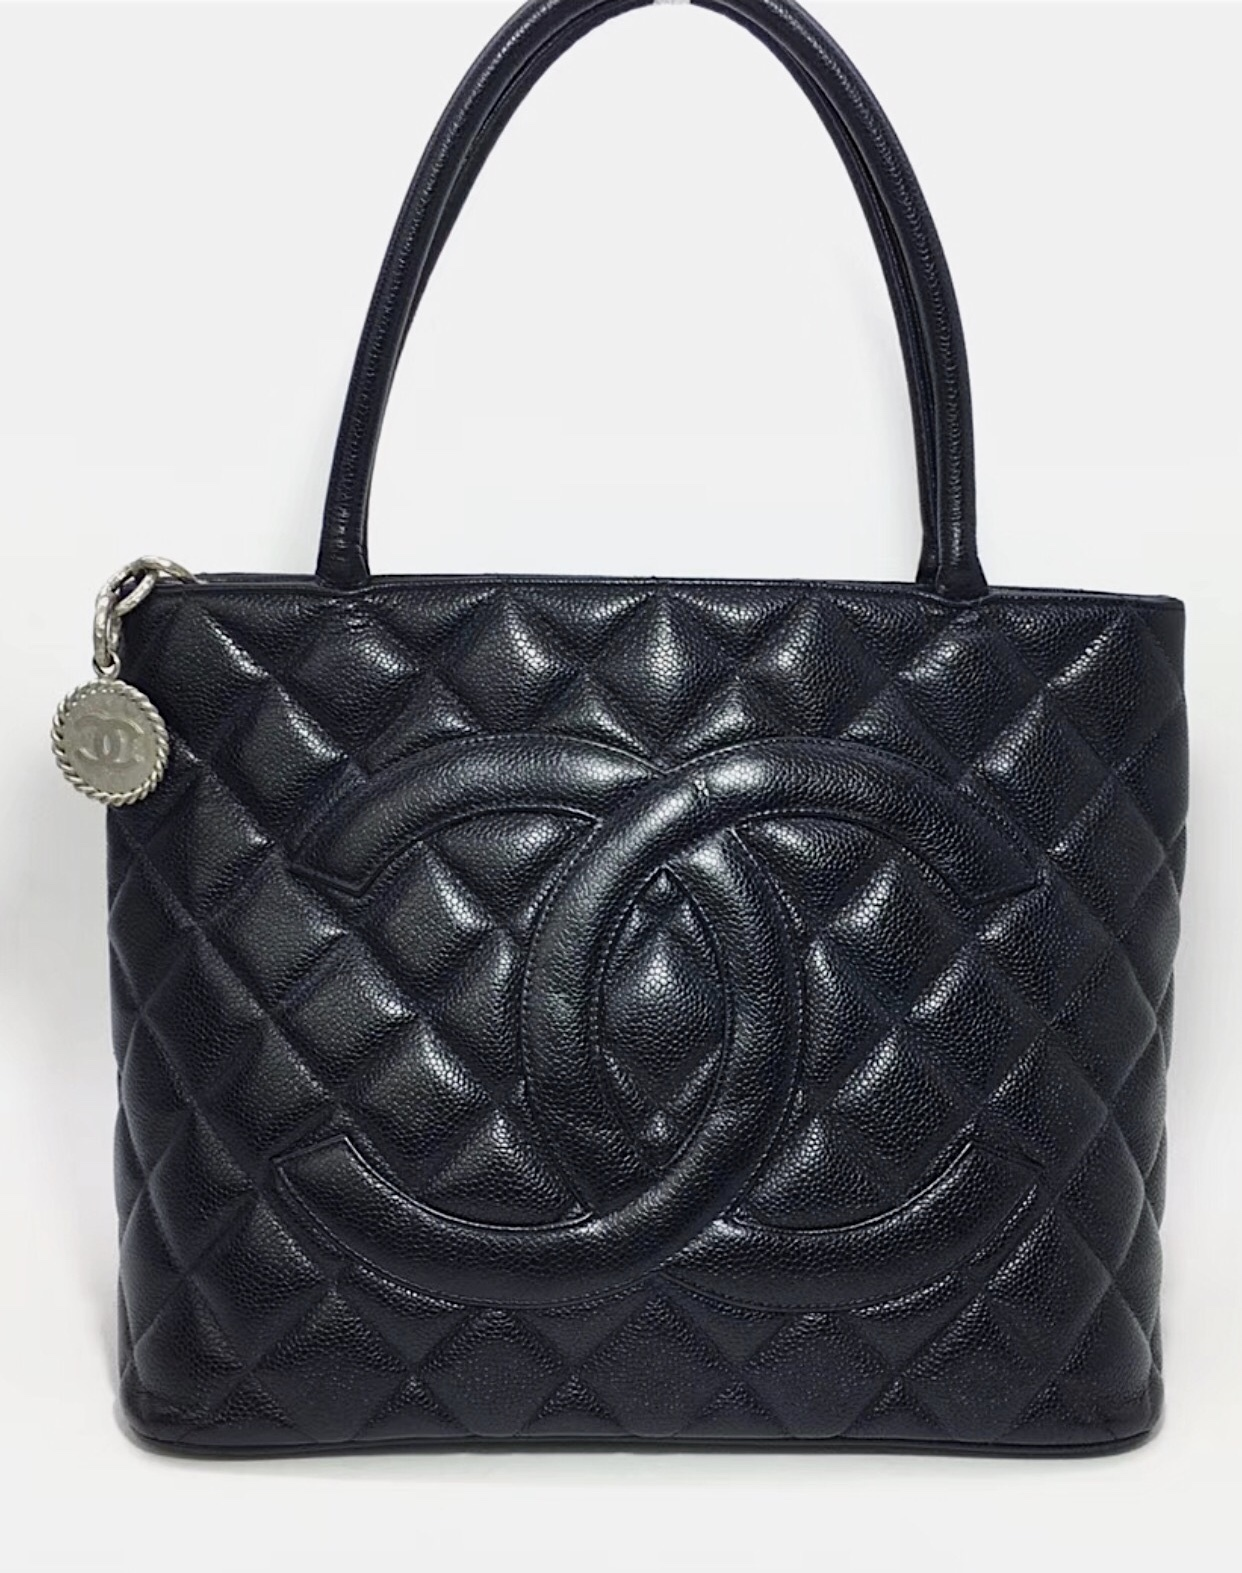 AUTHENTIC CHANEL QUILTED CAVIAR PST PETITE SHOPPING TOTE BAG BLACK SHW RECEIPT